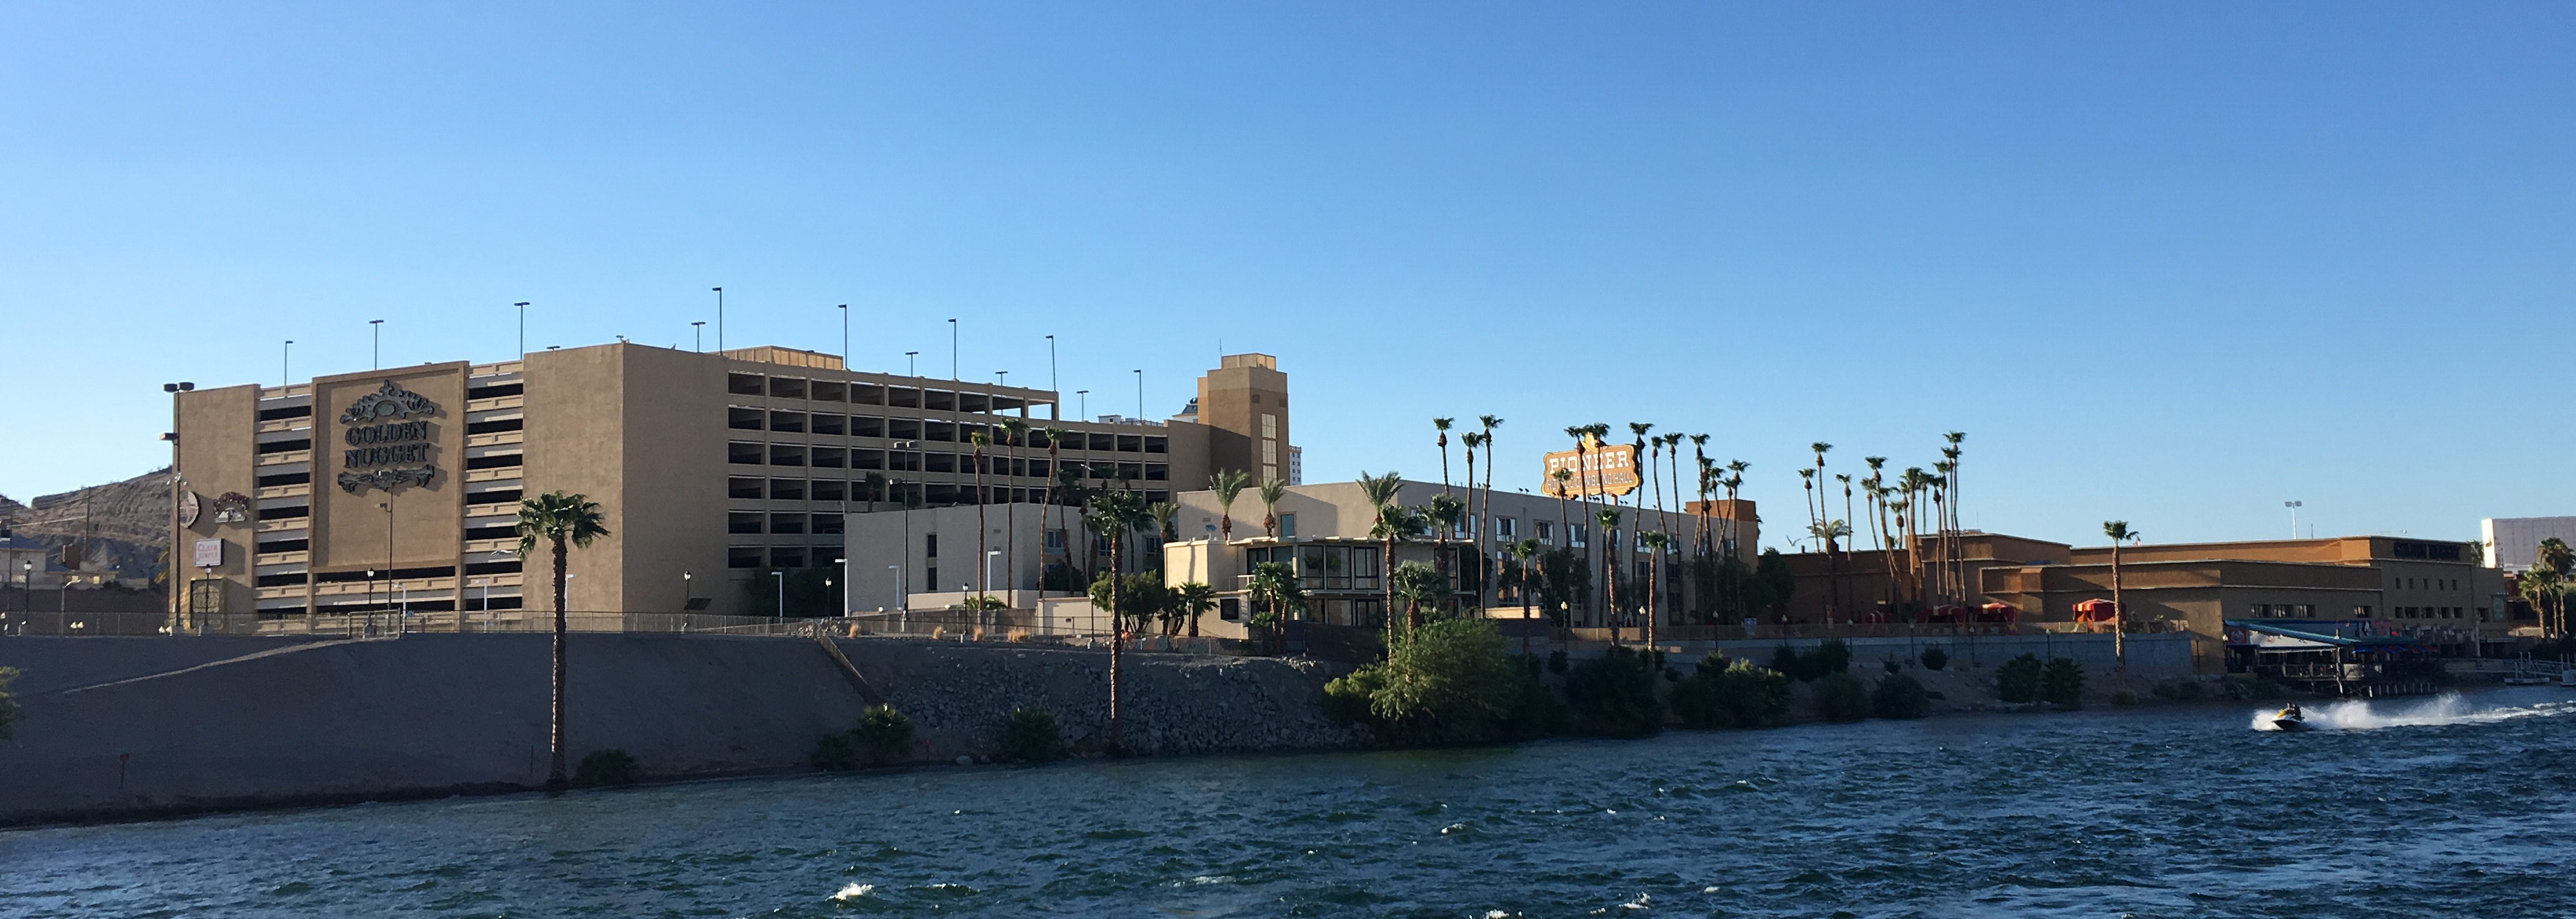 Golden Nugget Laughlin - Wikipedia on